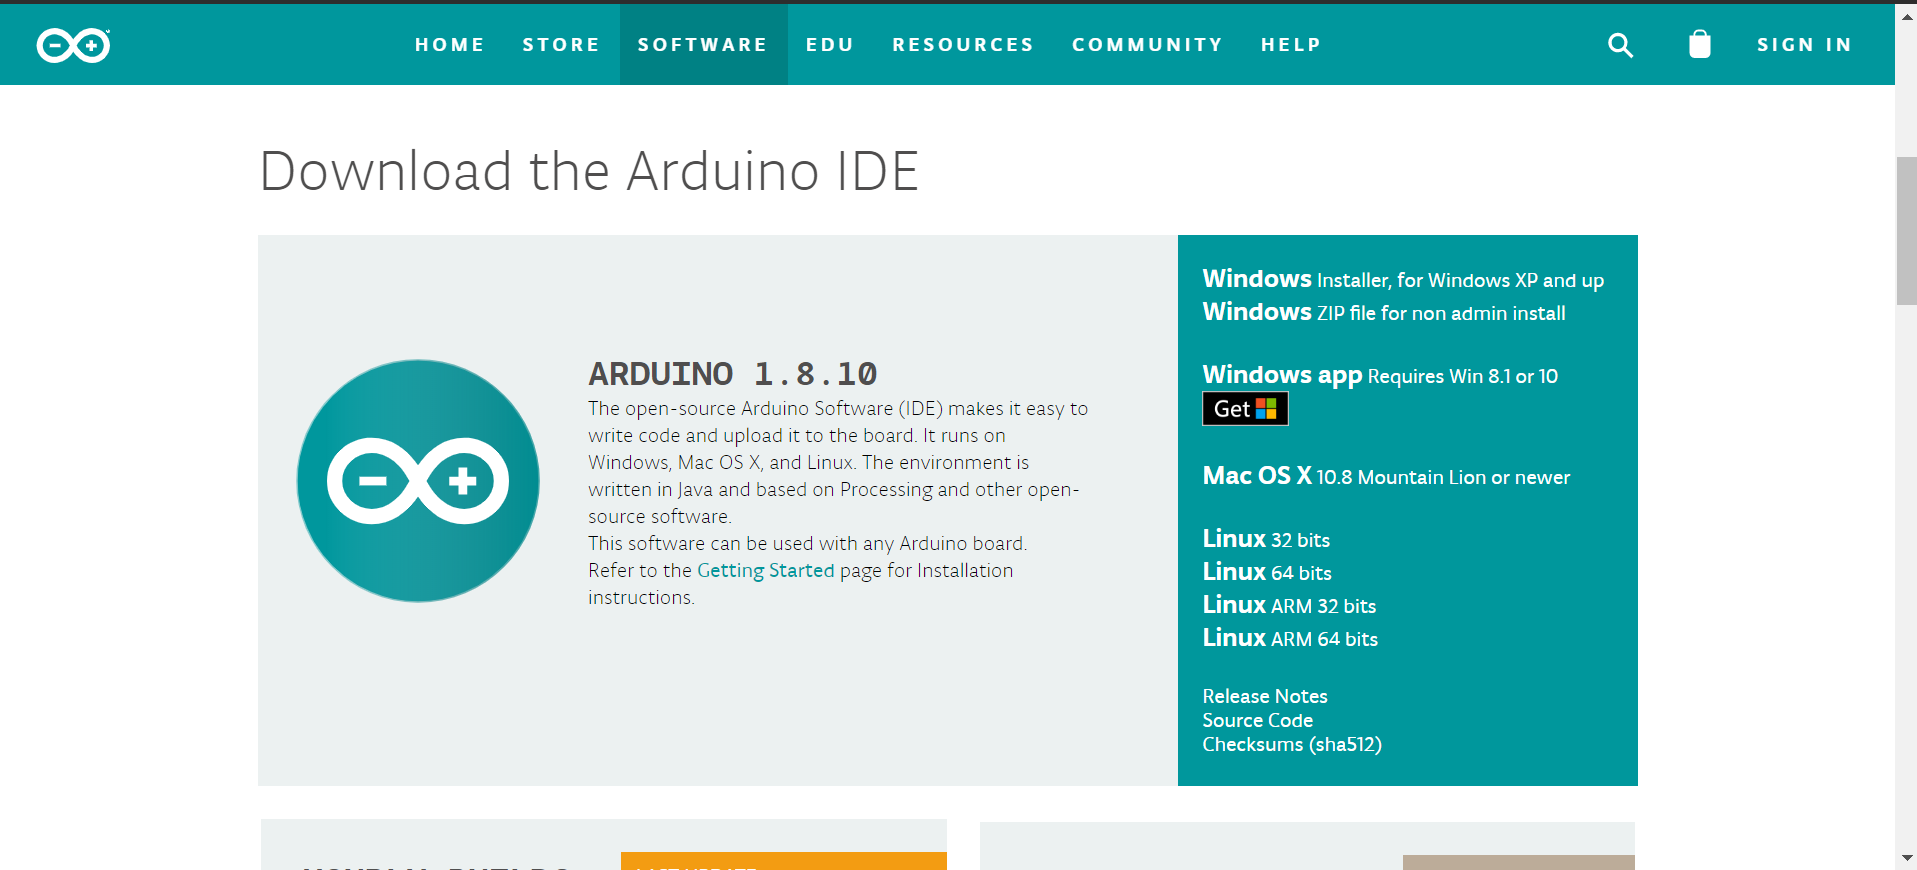 Photography_Arduino_RW_MP_image10.png